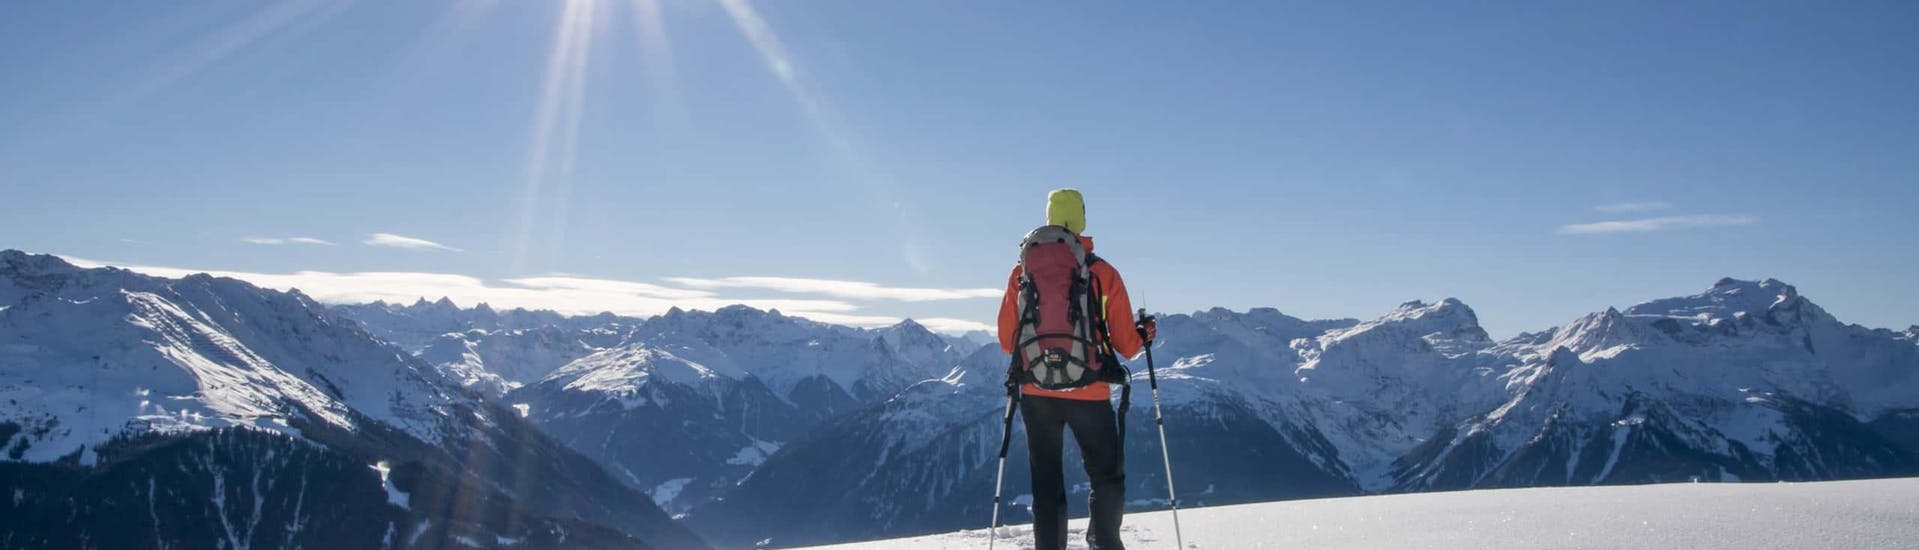 A hiker is overlooking the mountainous panorama while on one of the Private Snowshoeing Tour organised by Wolfgang Pfeifhofer Ski-Mountain Coaching.